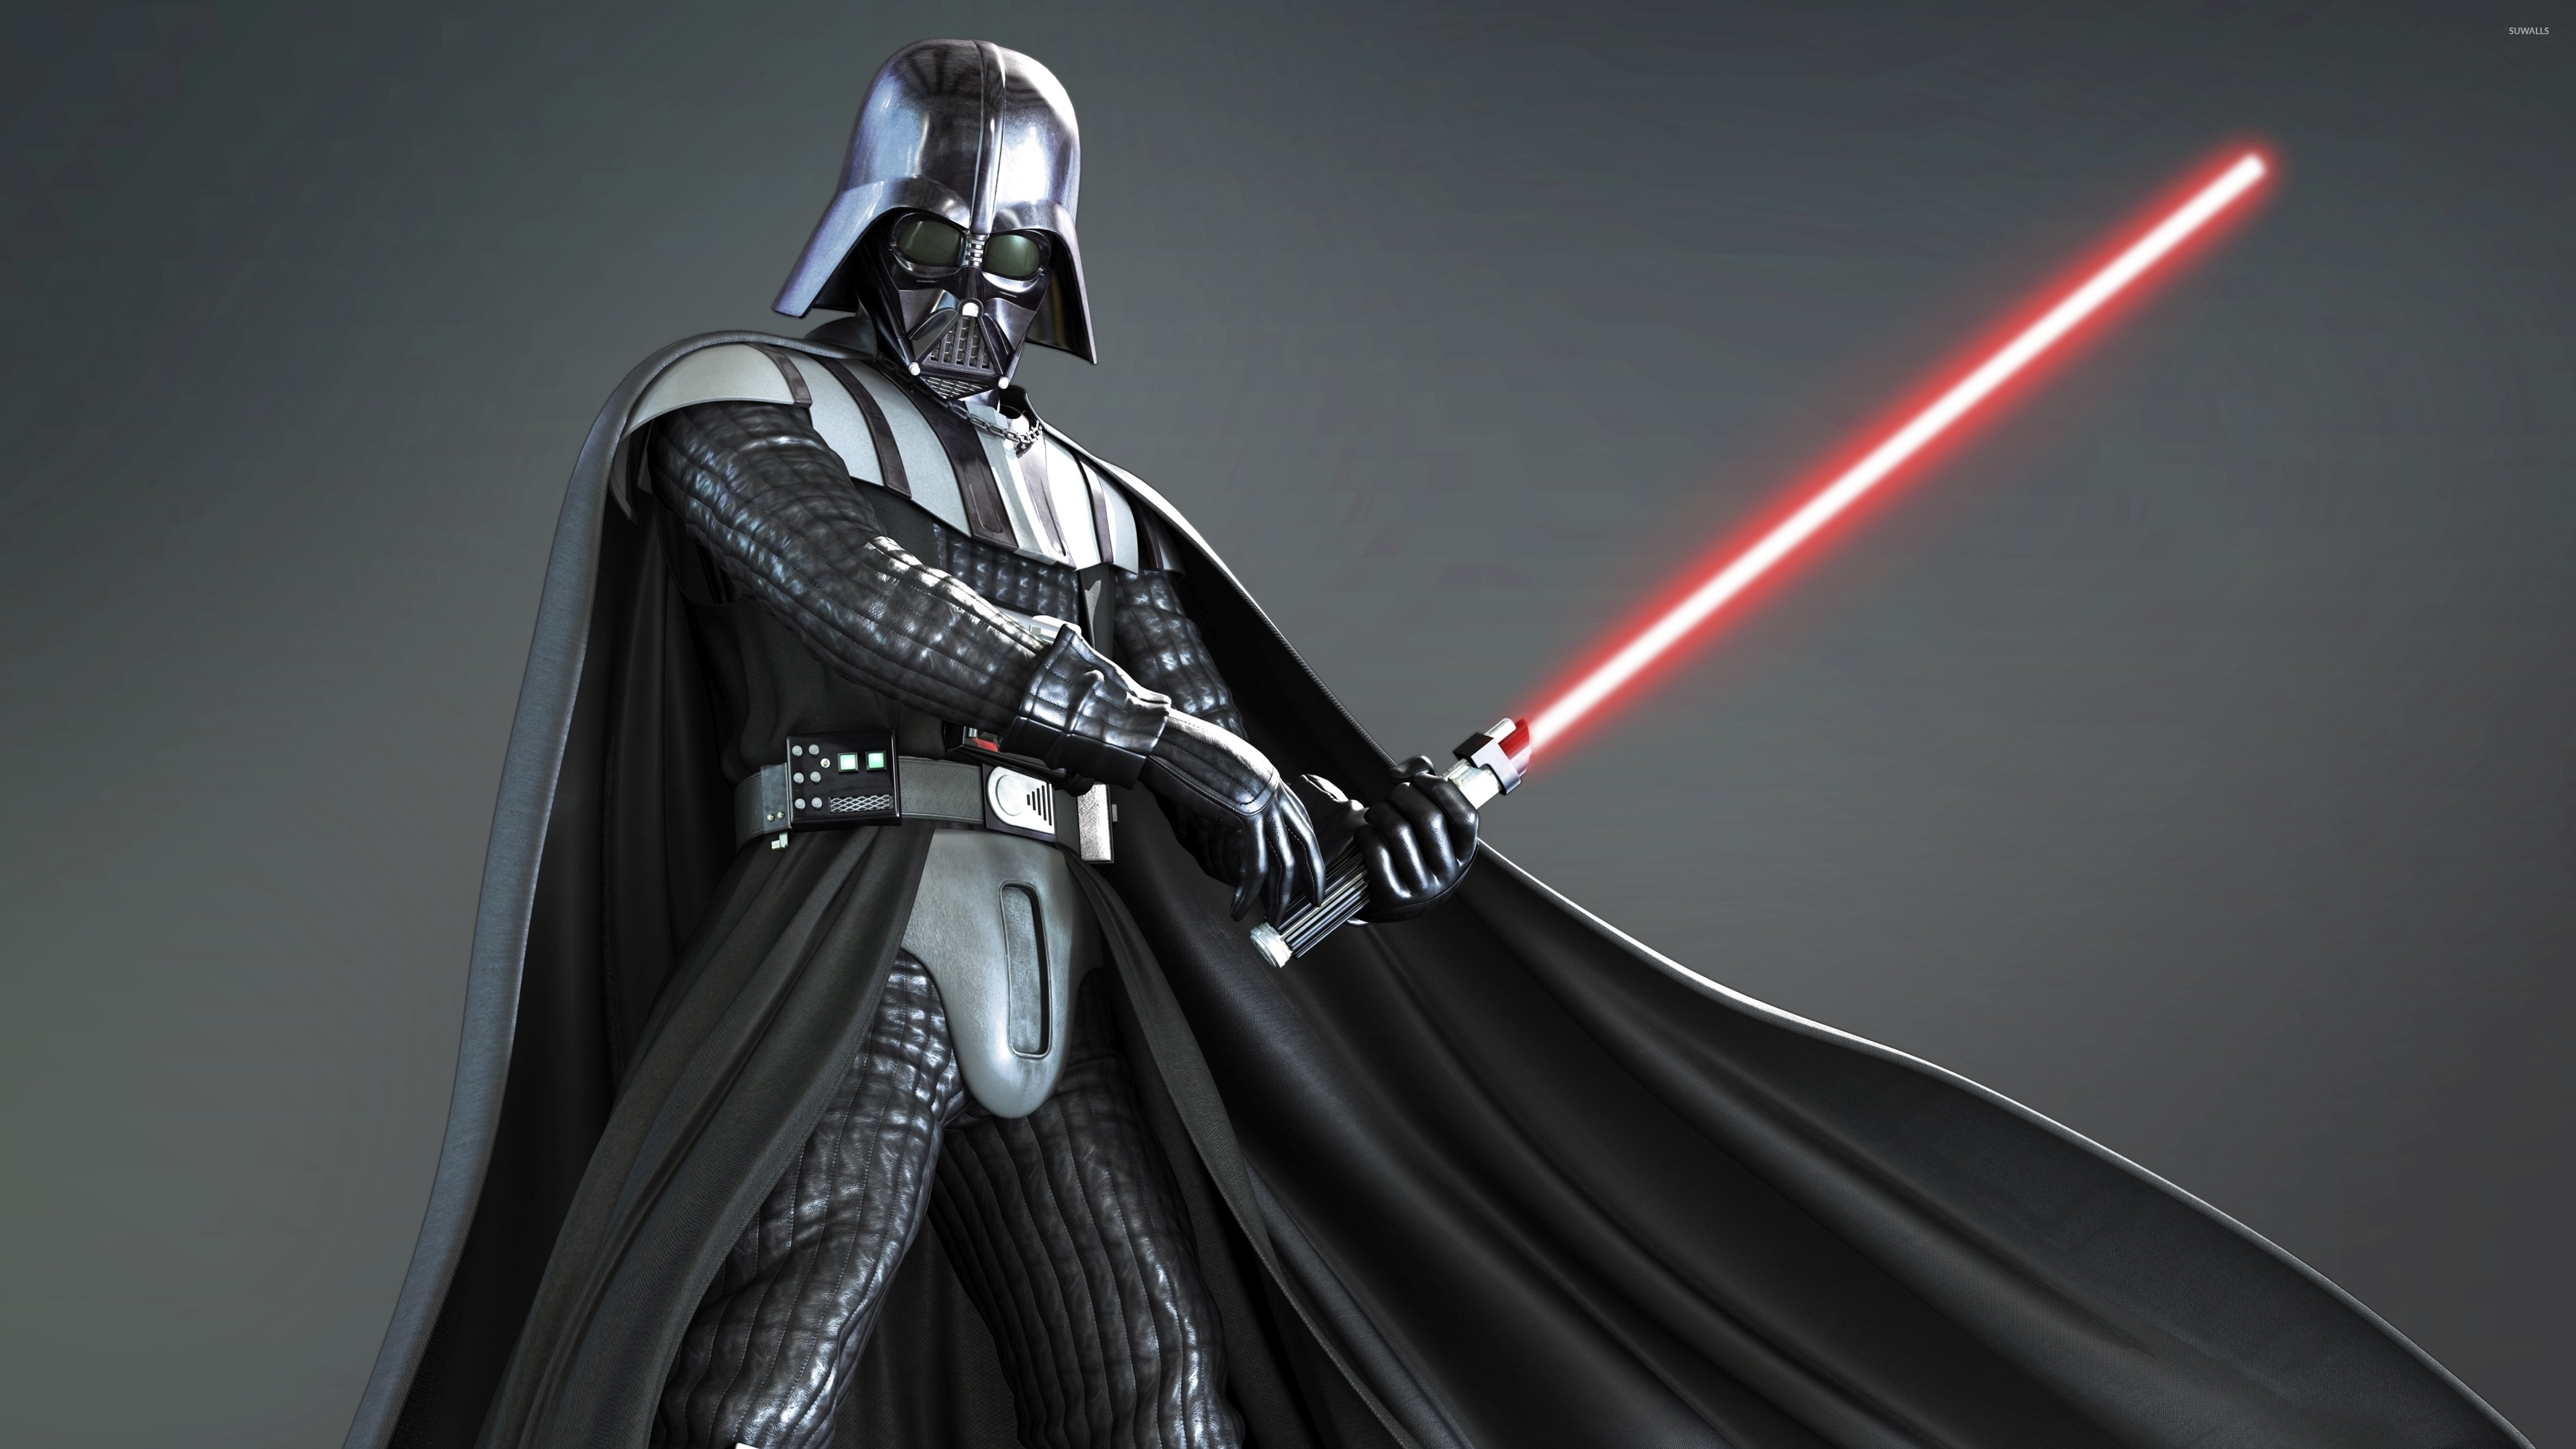 Darth Vader Wallpaper Iphone: Darth Vader Wallpaper (76+ Pictures